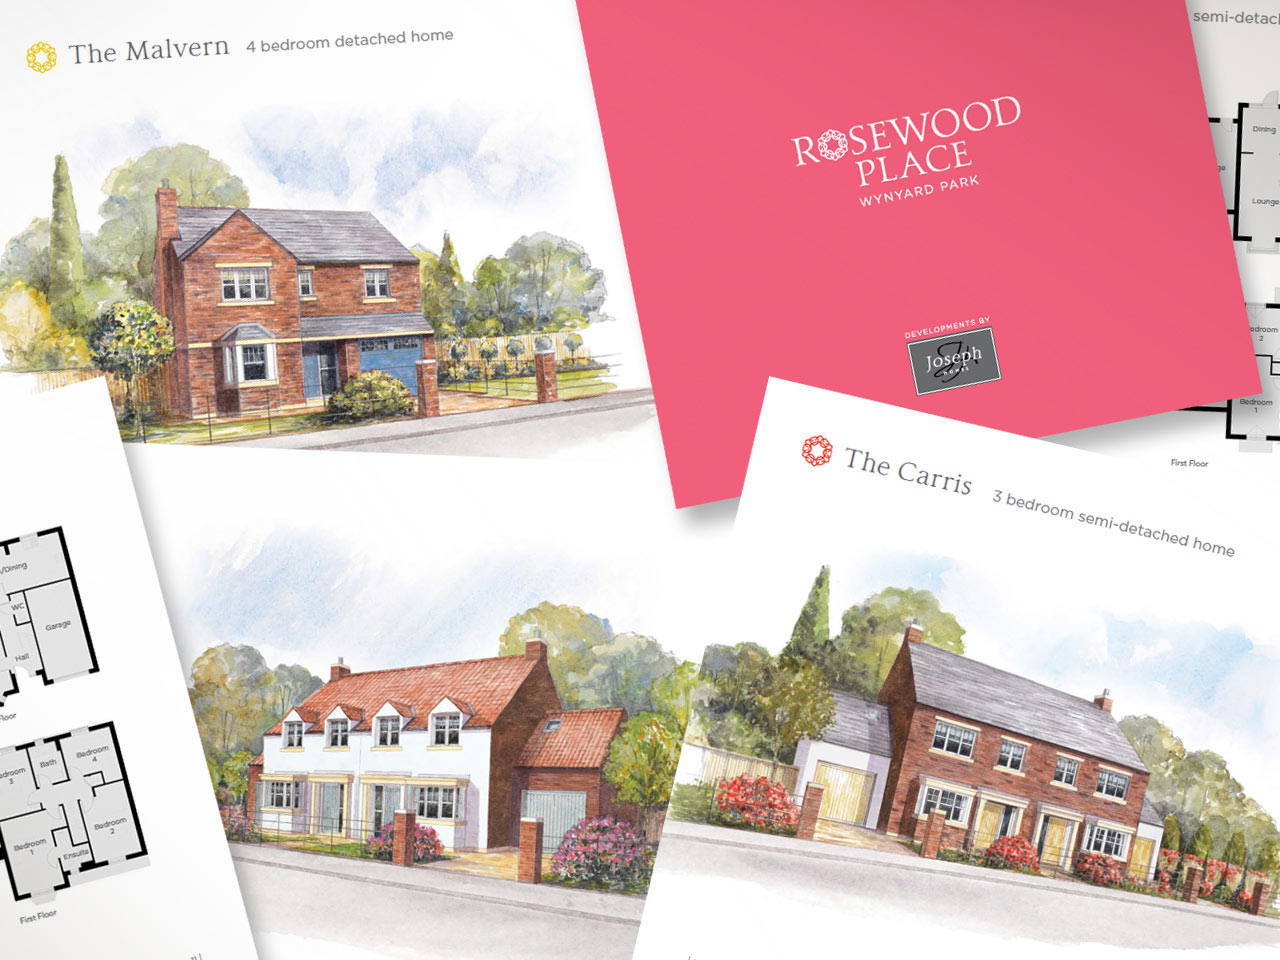 Sample pages from the Rosewood Place sales brochure